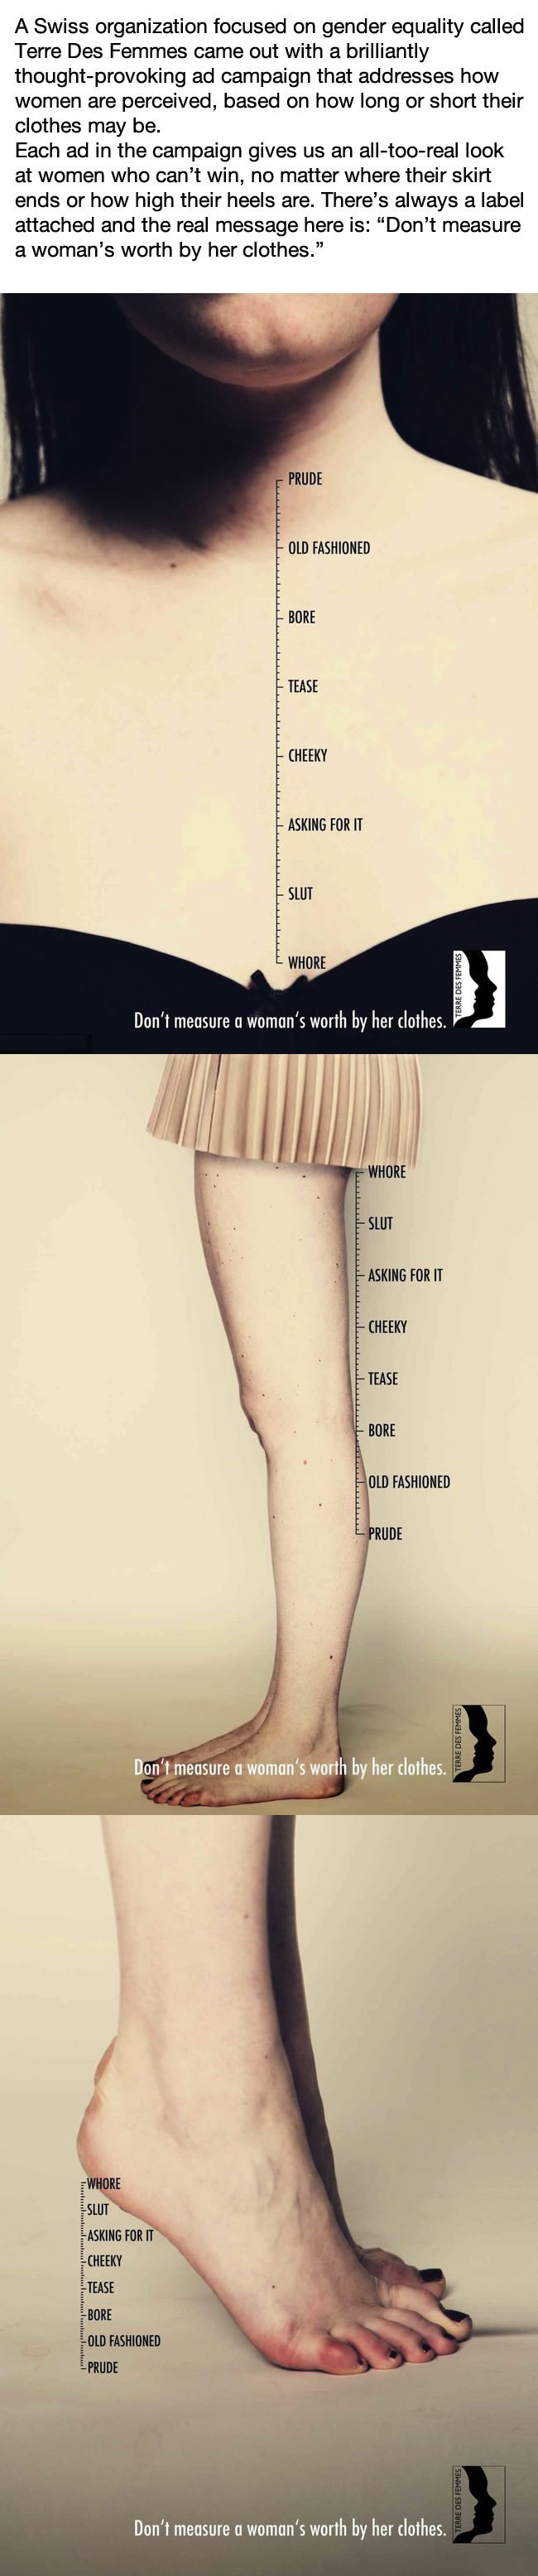 terre des femmes came out with a brilliantly thought-provoking ad campaign that addresses how women perceived based on how long or short their clothes are